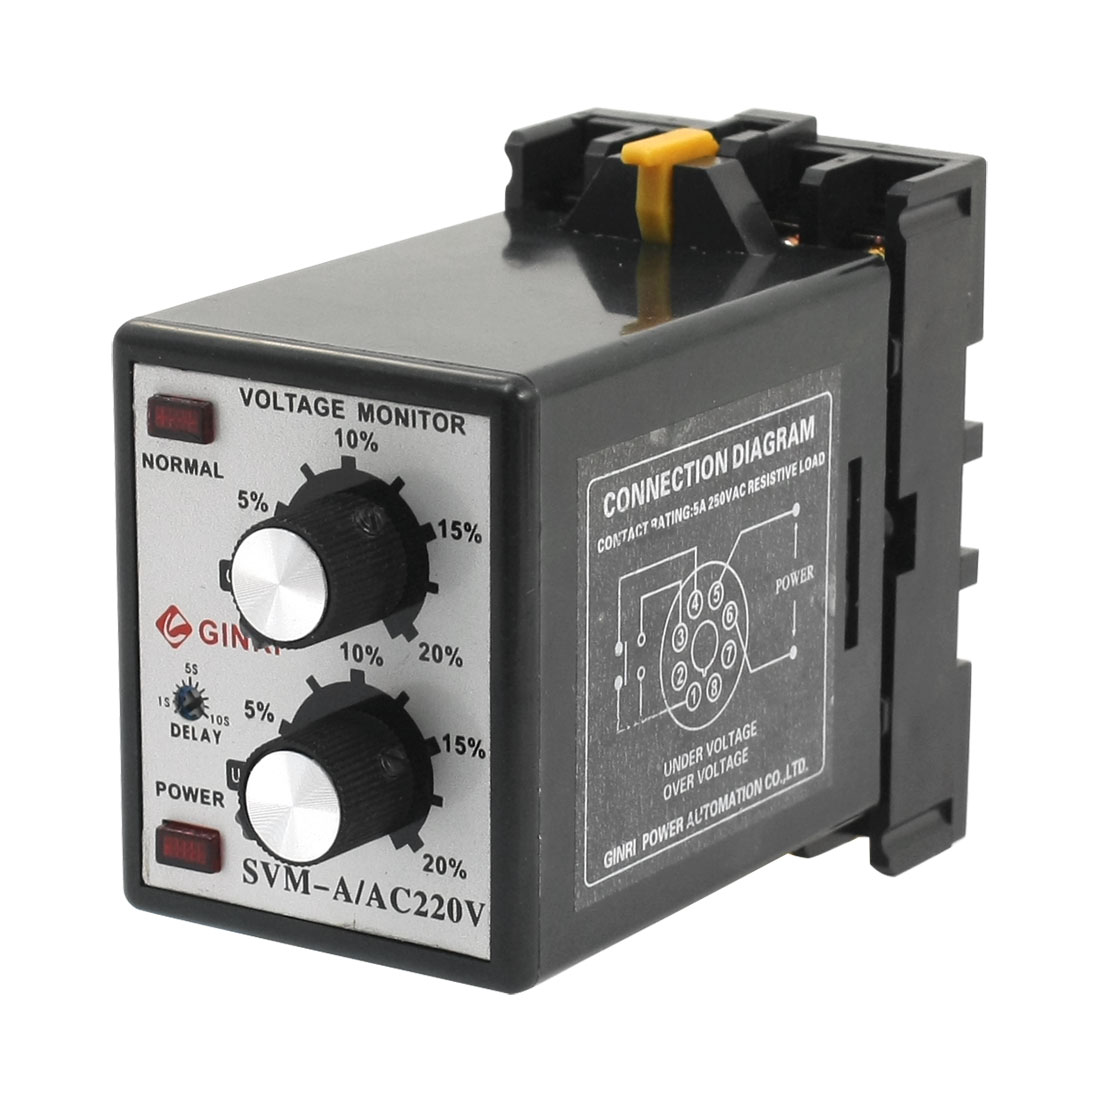 SVM-A/220V Protective AC 220V Single-phase Red LED Indicater Phase Failure Sequence Unbalance Over/Under Voltage Adjustable Relay